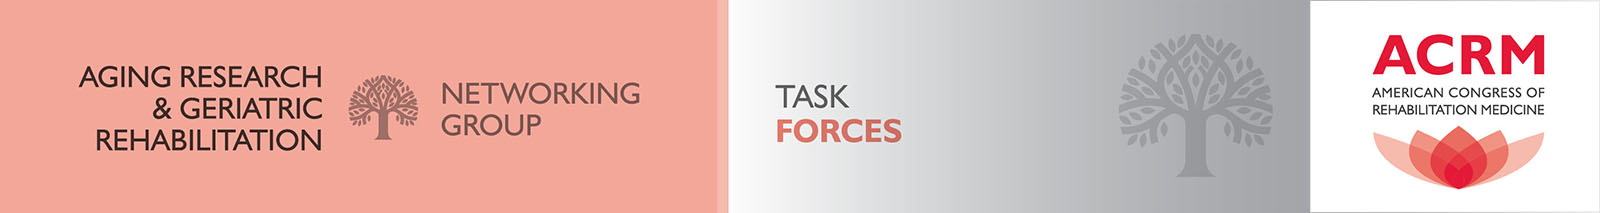 Aging Research and Geriatric Rehabilitation: Task Forces